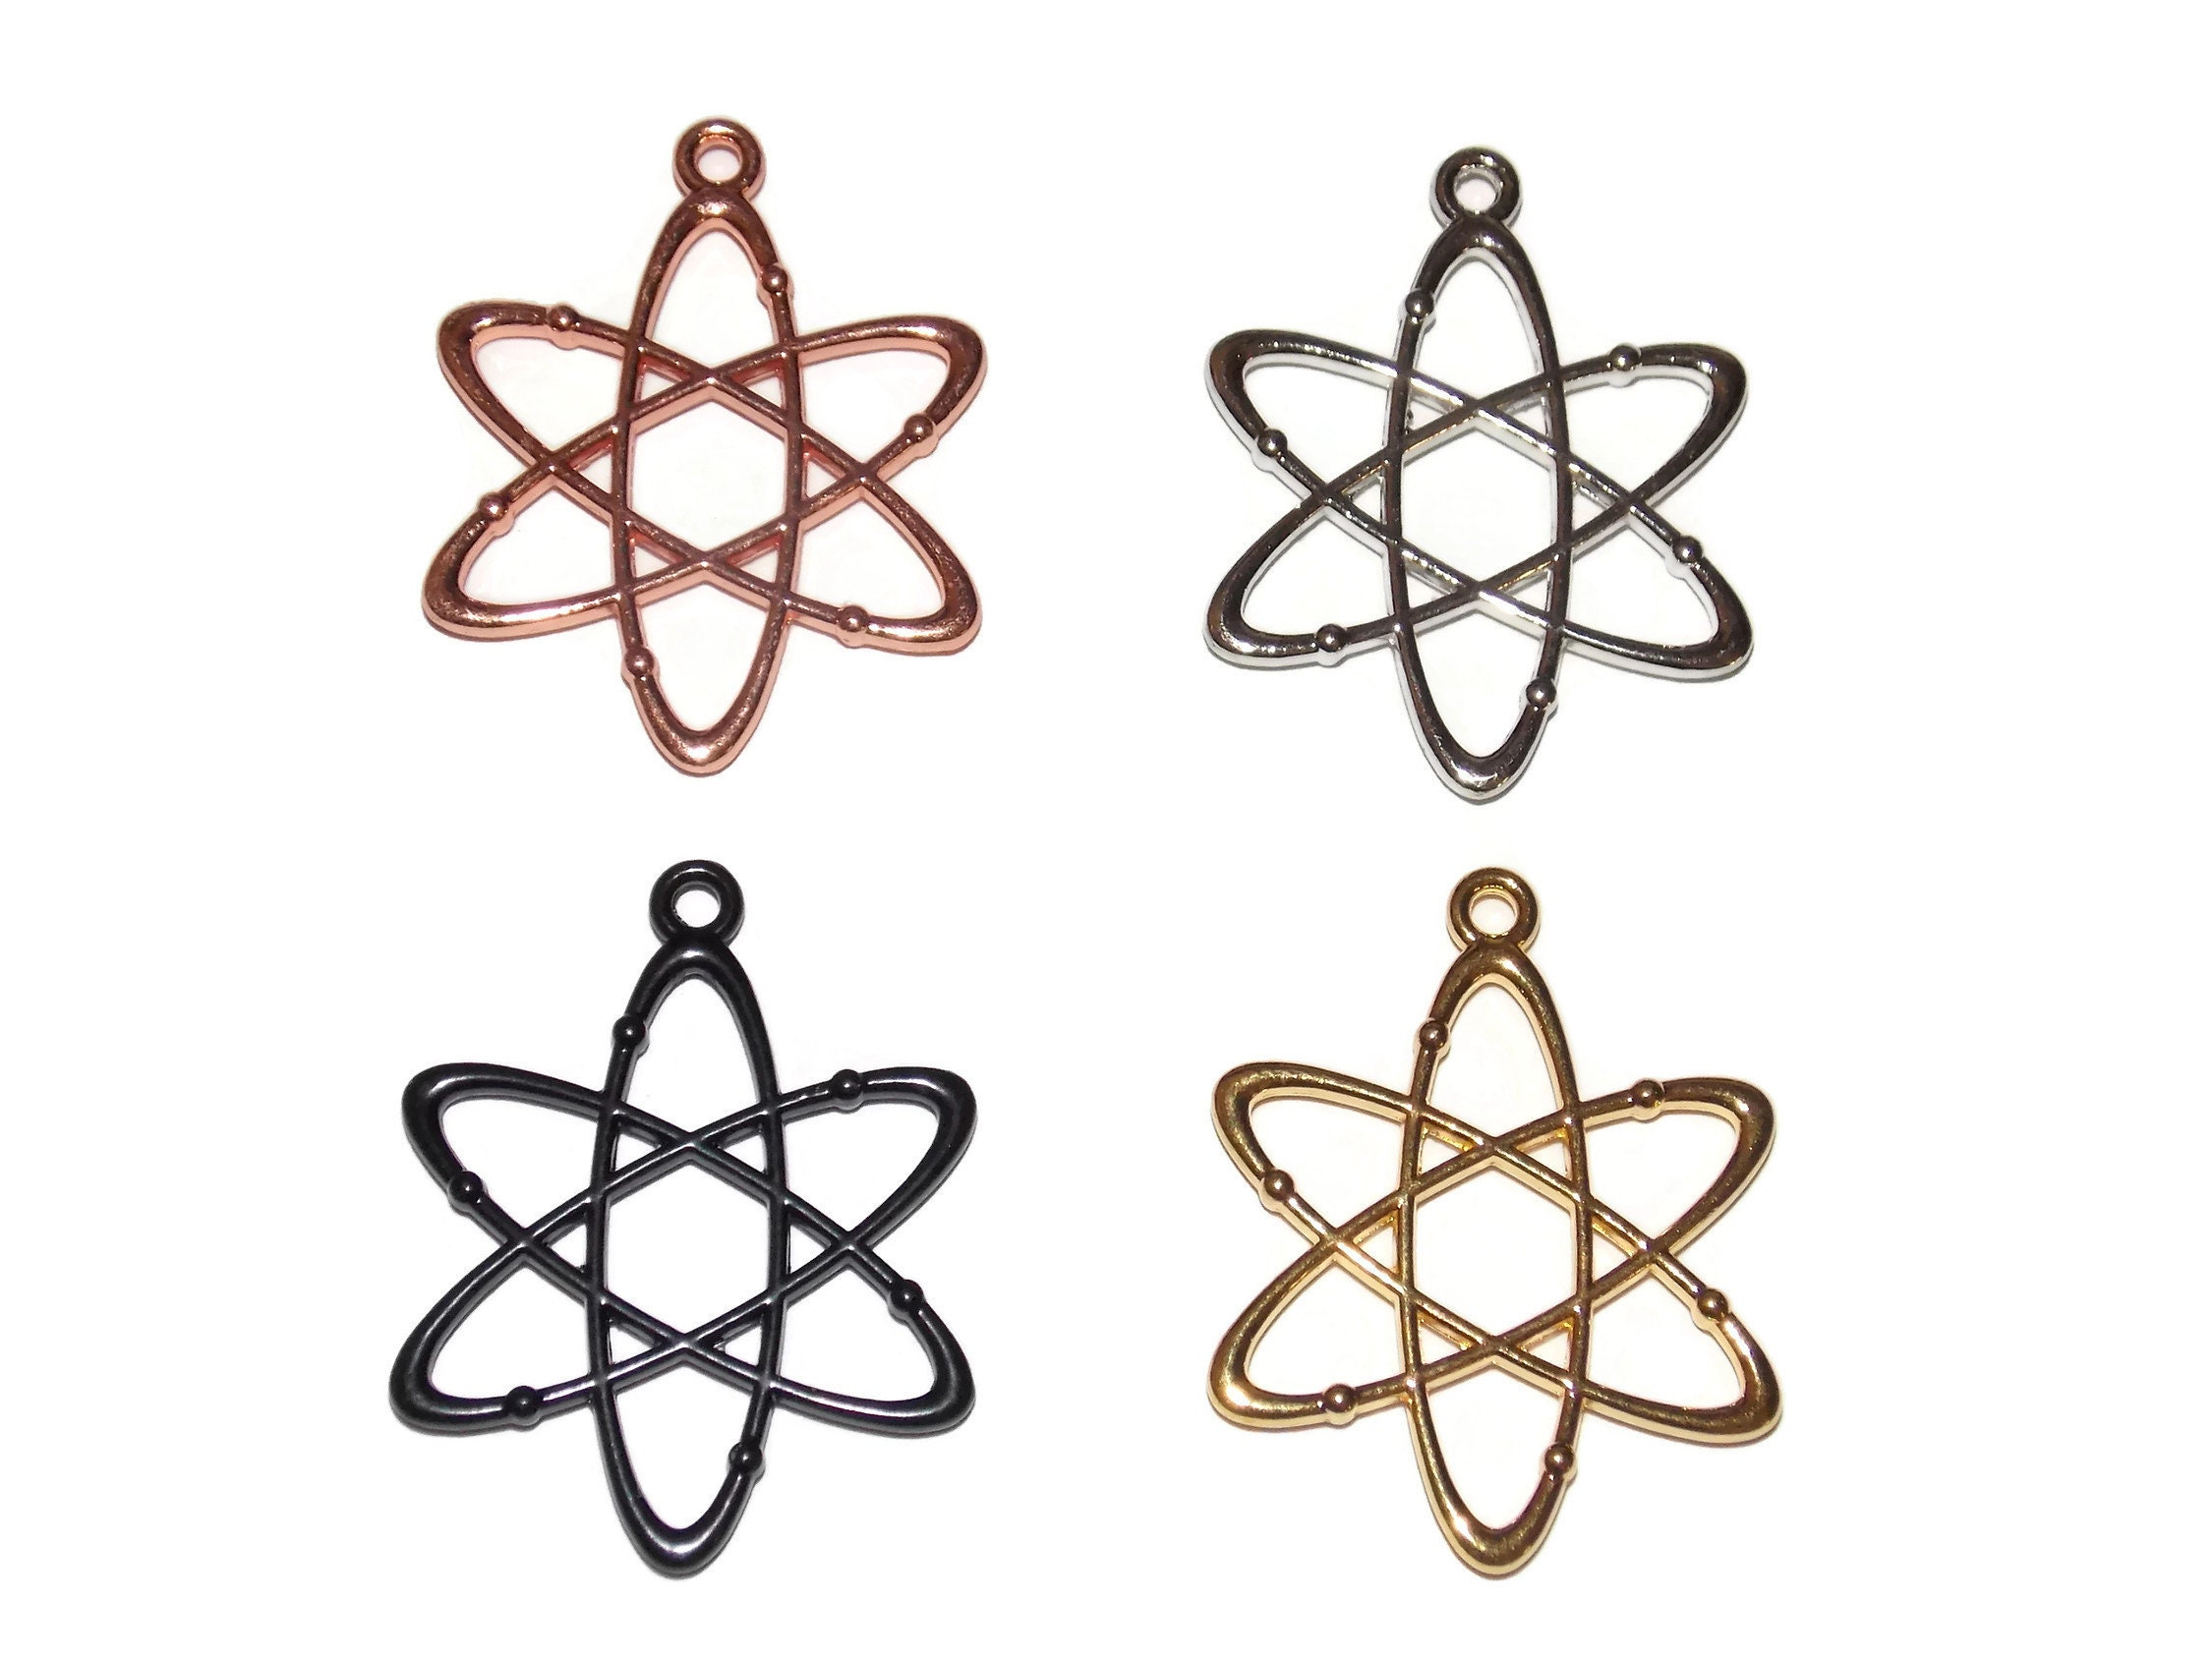 Atom Charms Atomic Symbol Pendants Gold Tone Science Geek Etsy